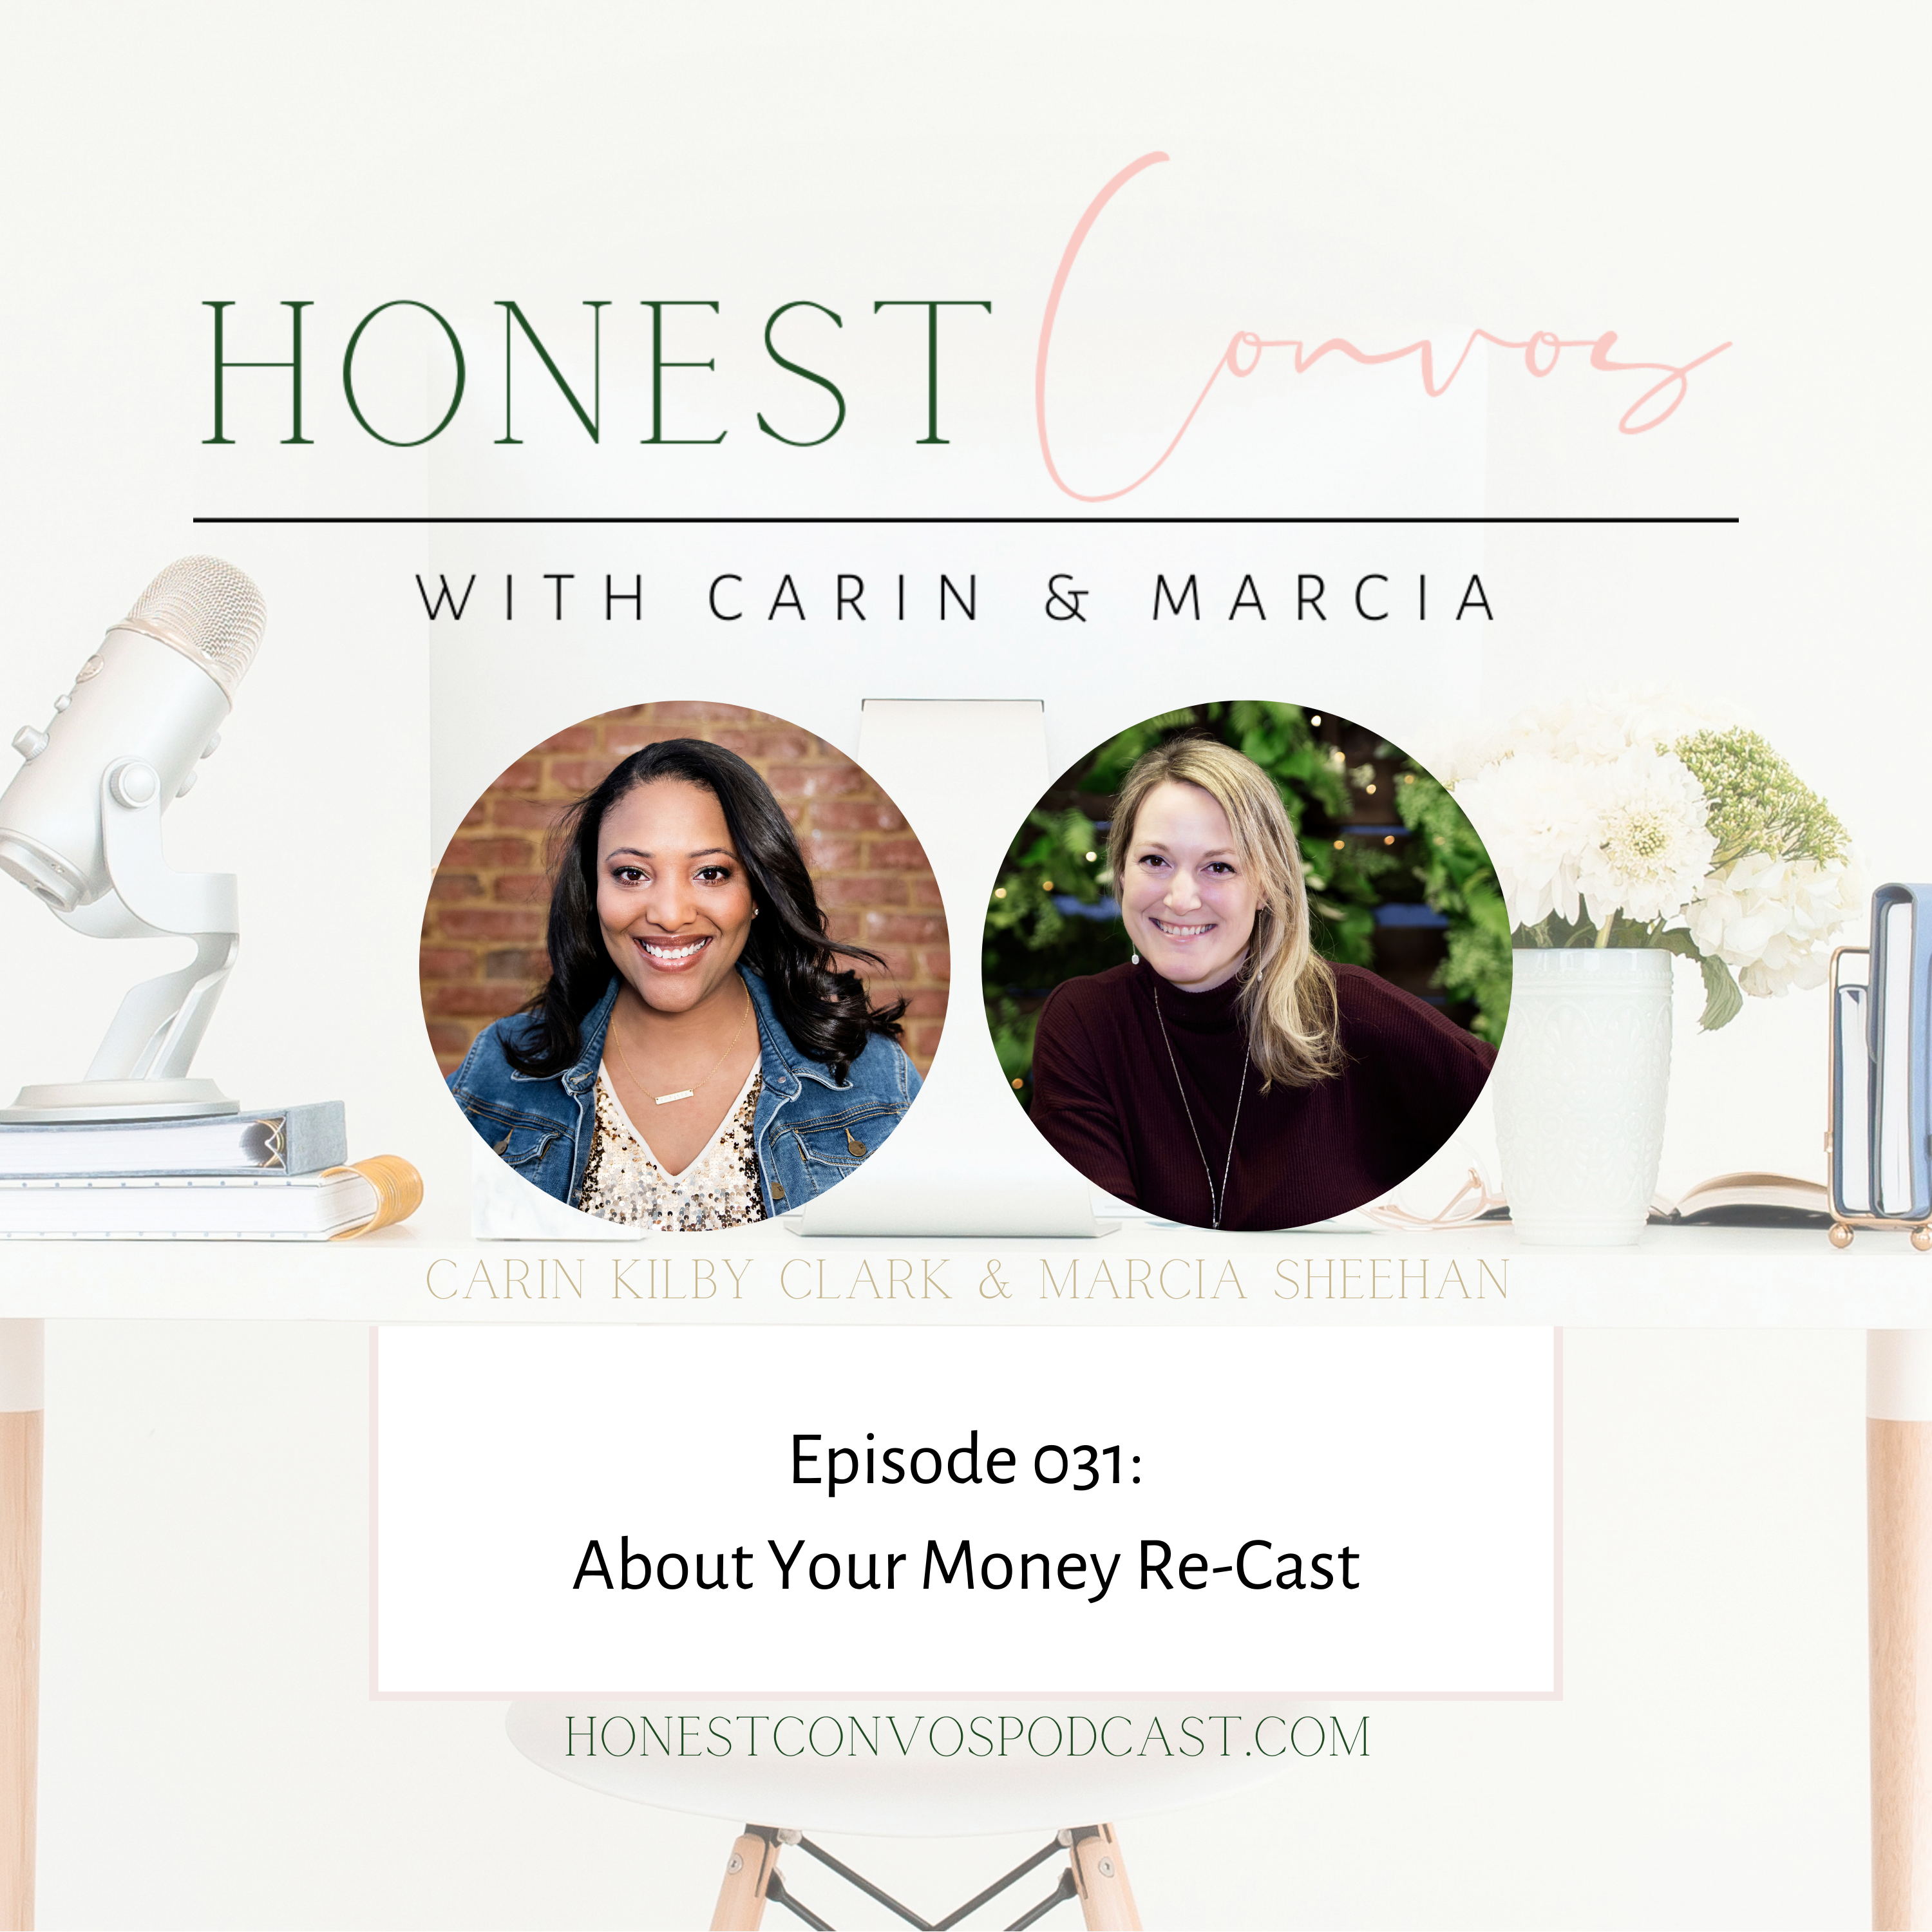 Honest Convos with Carin and Marcia - About Your Money Re-Cast